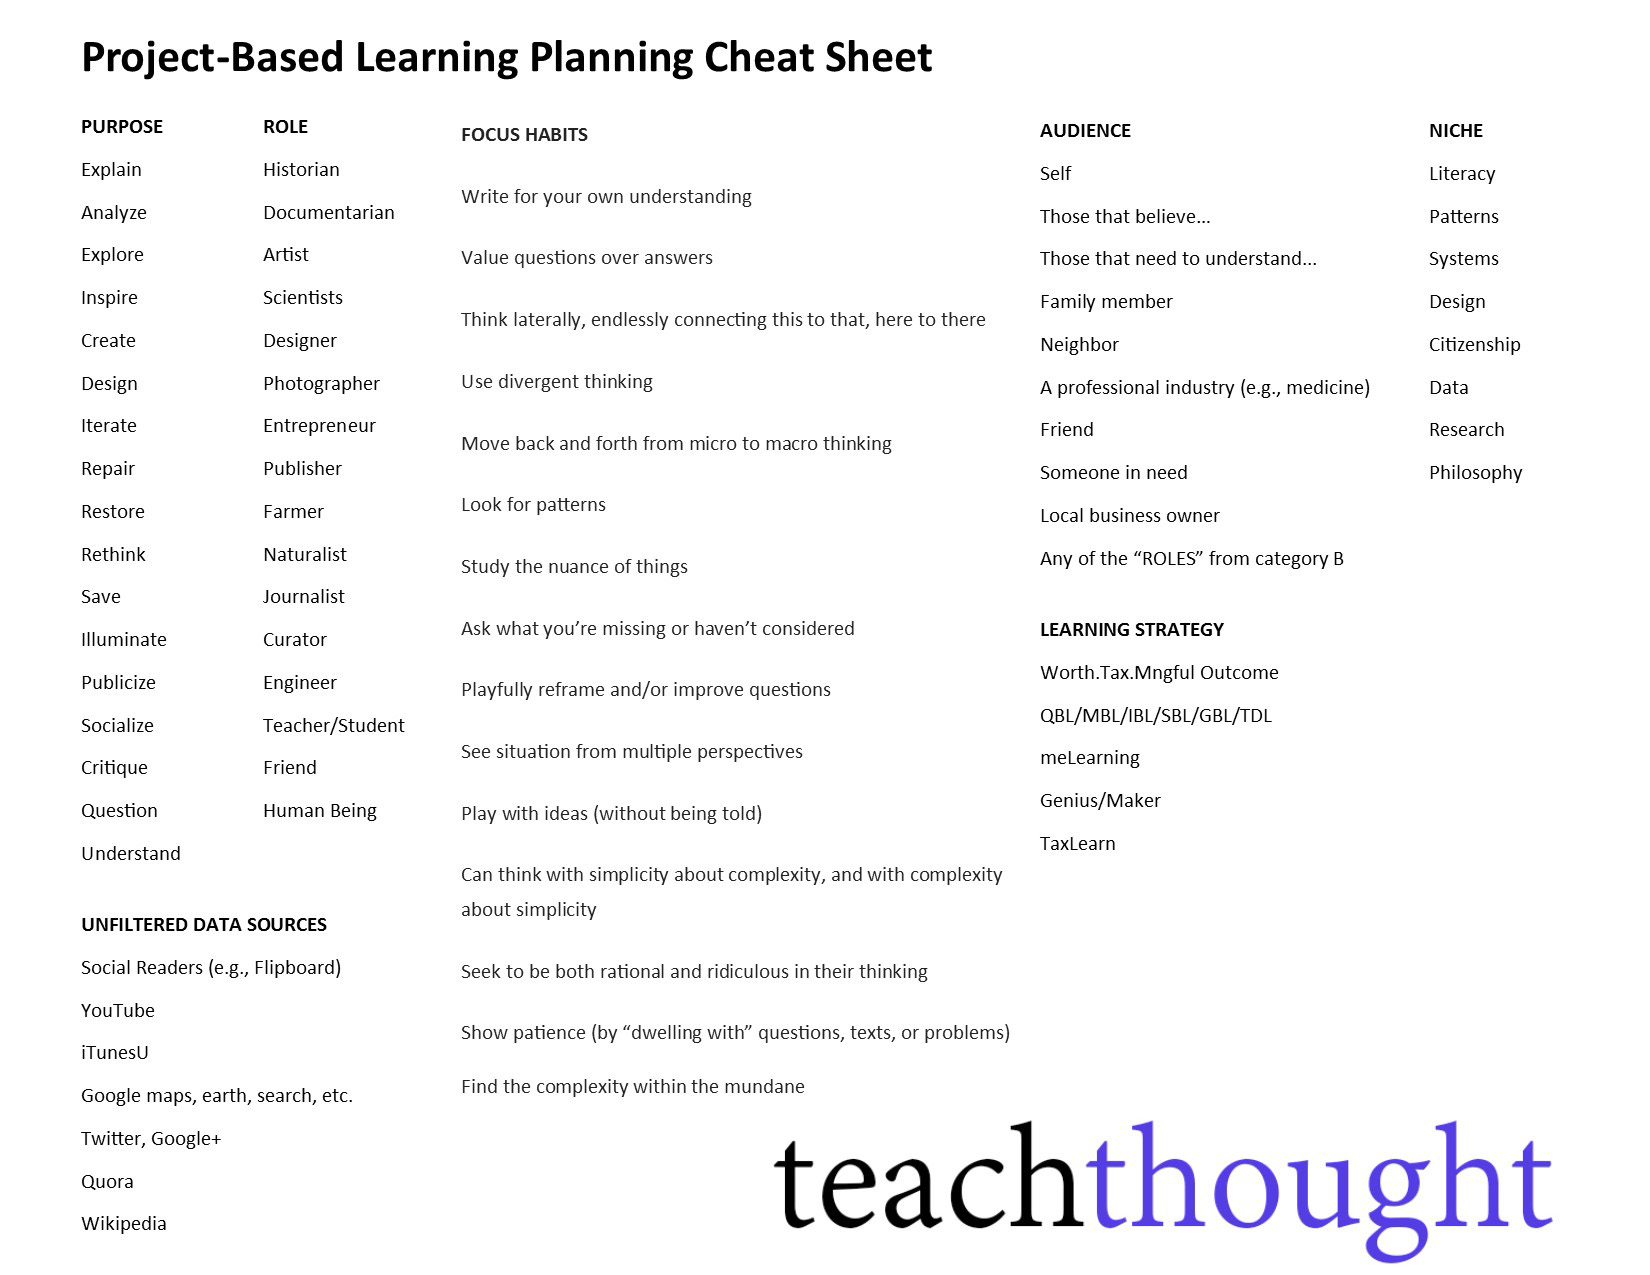 a better list of ideas for project based learning a project based learning cheat sheet for authentic learning